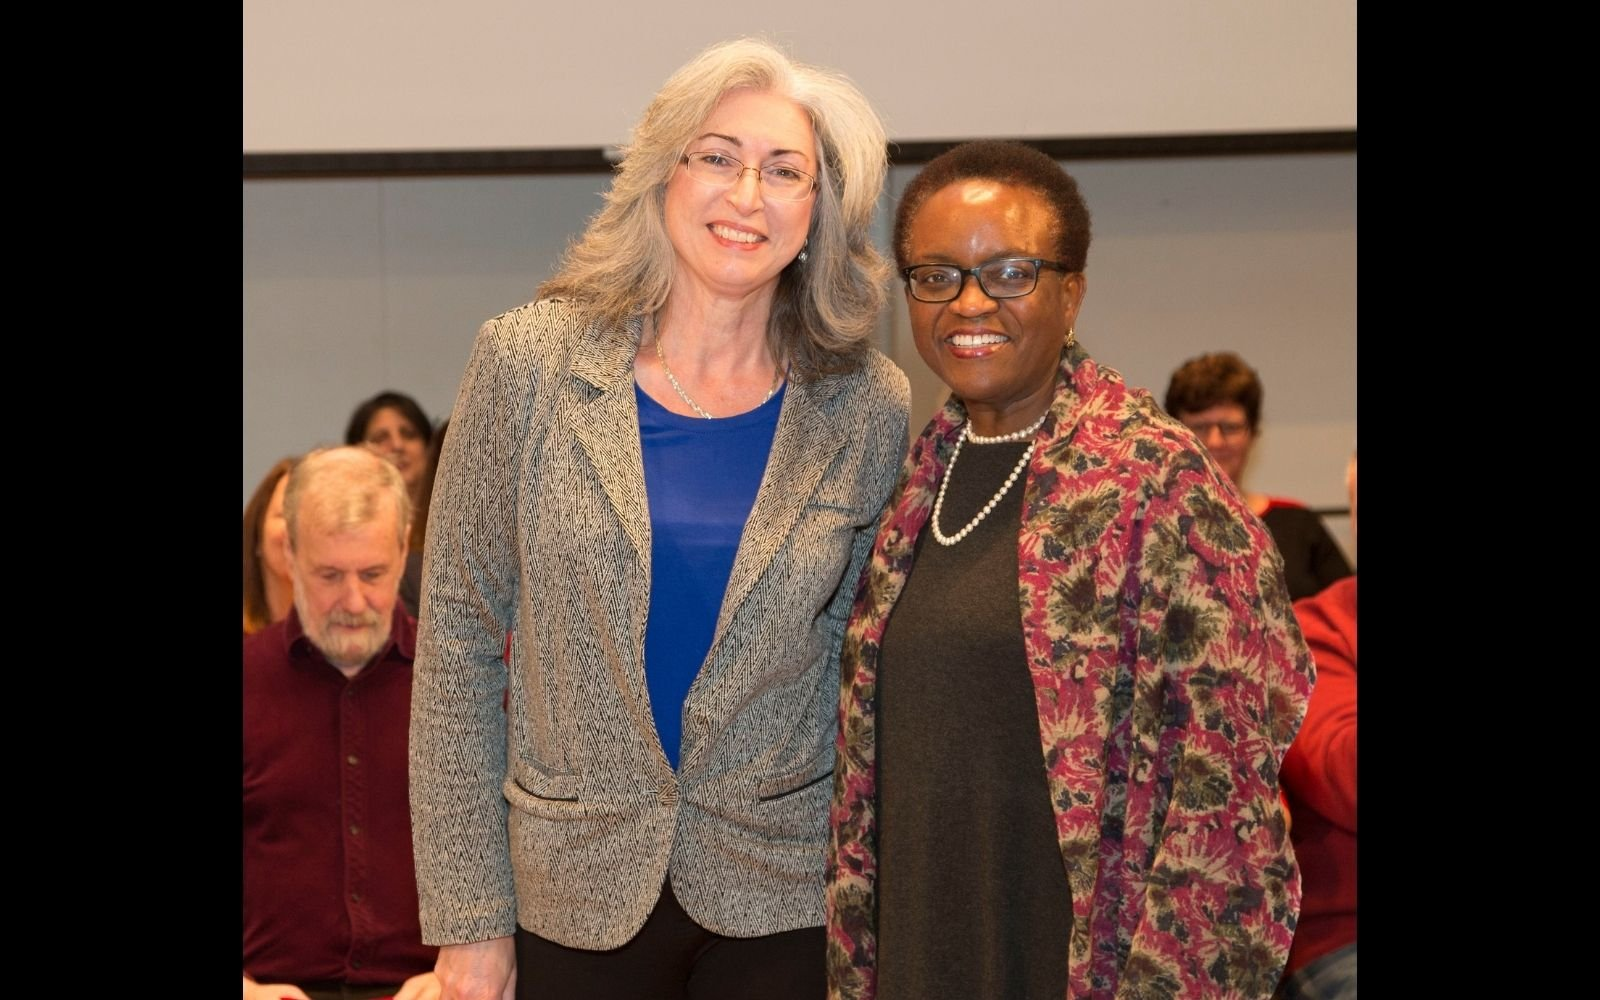 Two woman stand beside each other, smiling at the camera. The woman on the left wears glasses, a grey jacket, and a bright blue top and has shoulder length white hair. The woman on the right has close cropped hair and wears glasses and a long patterned jacket.